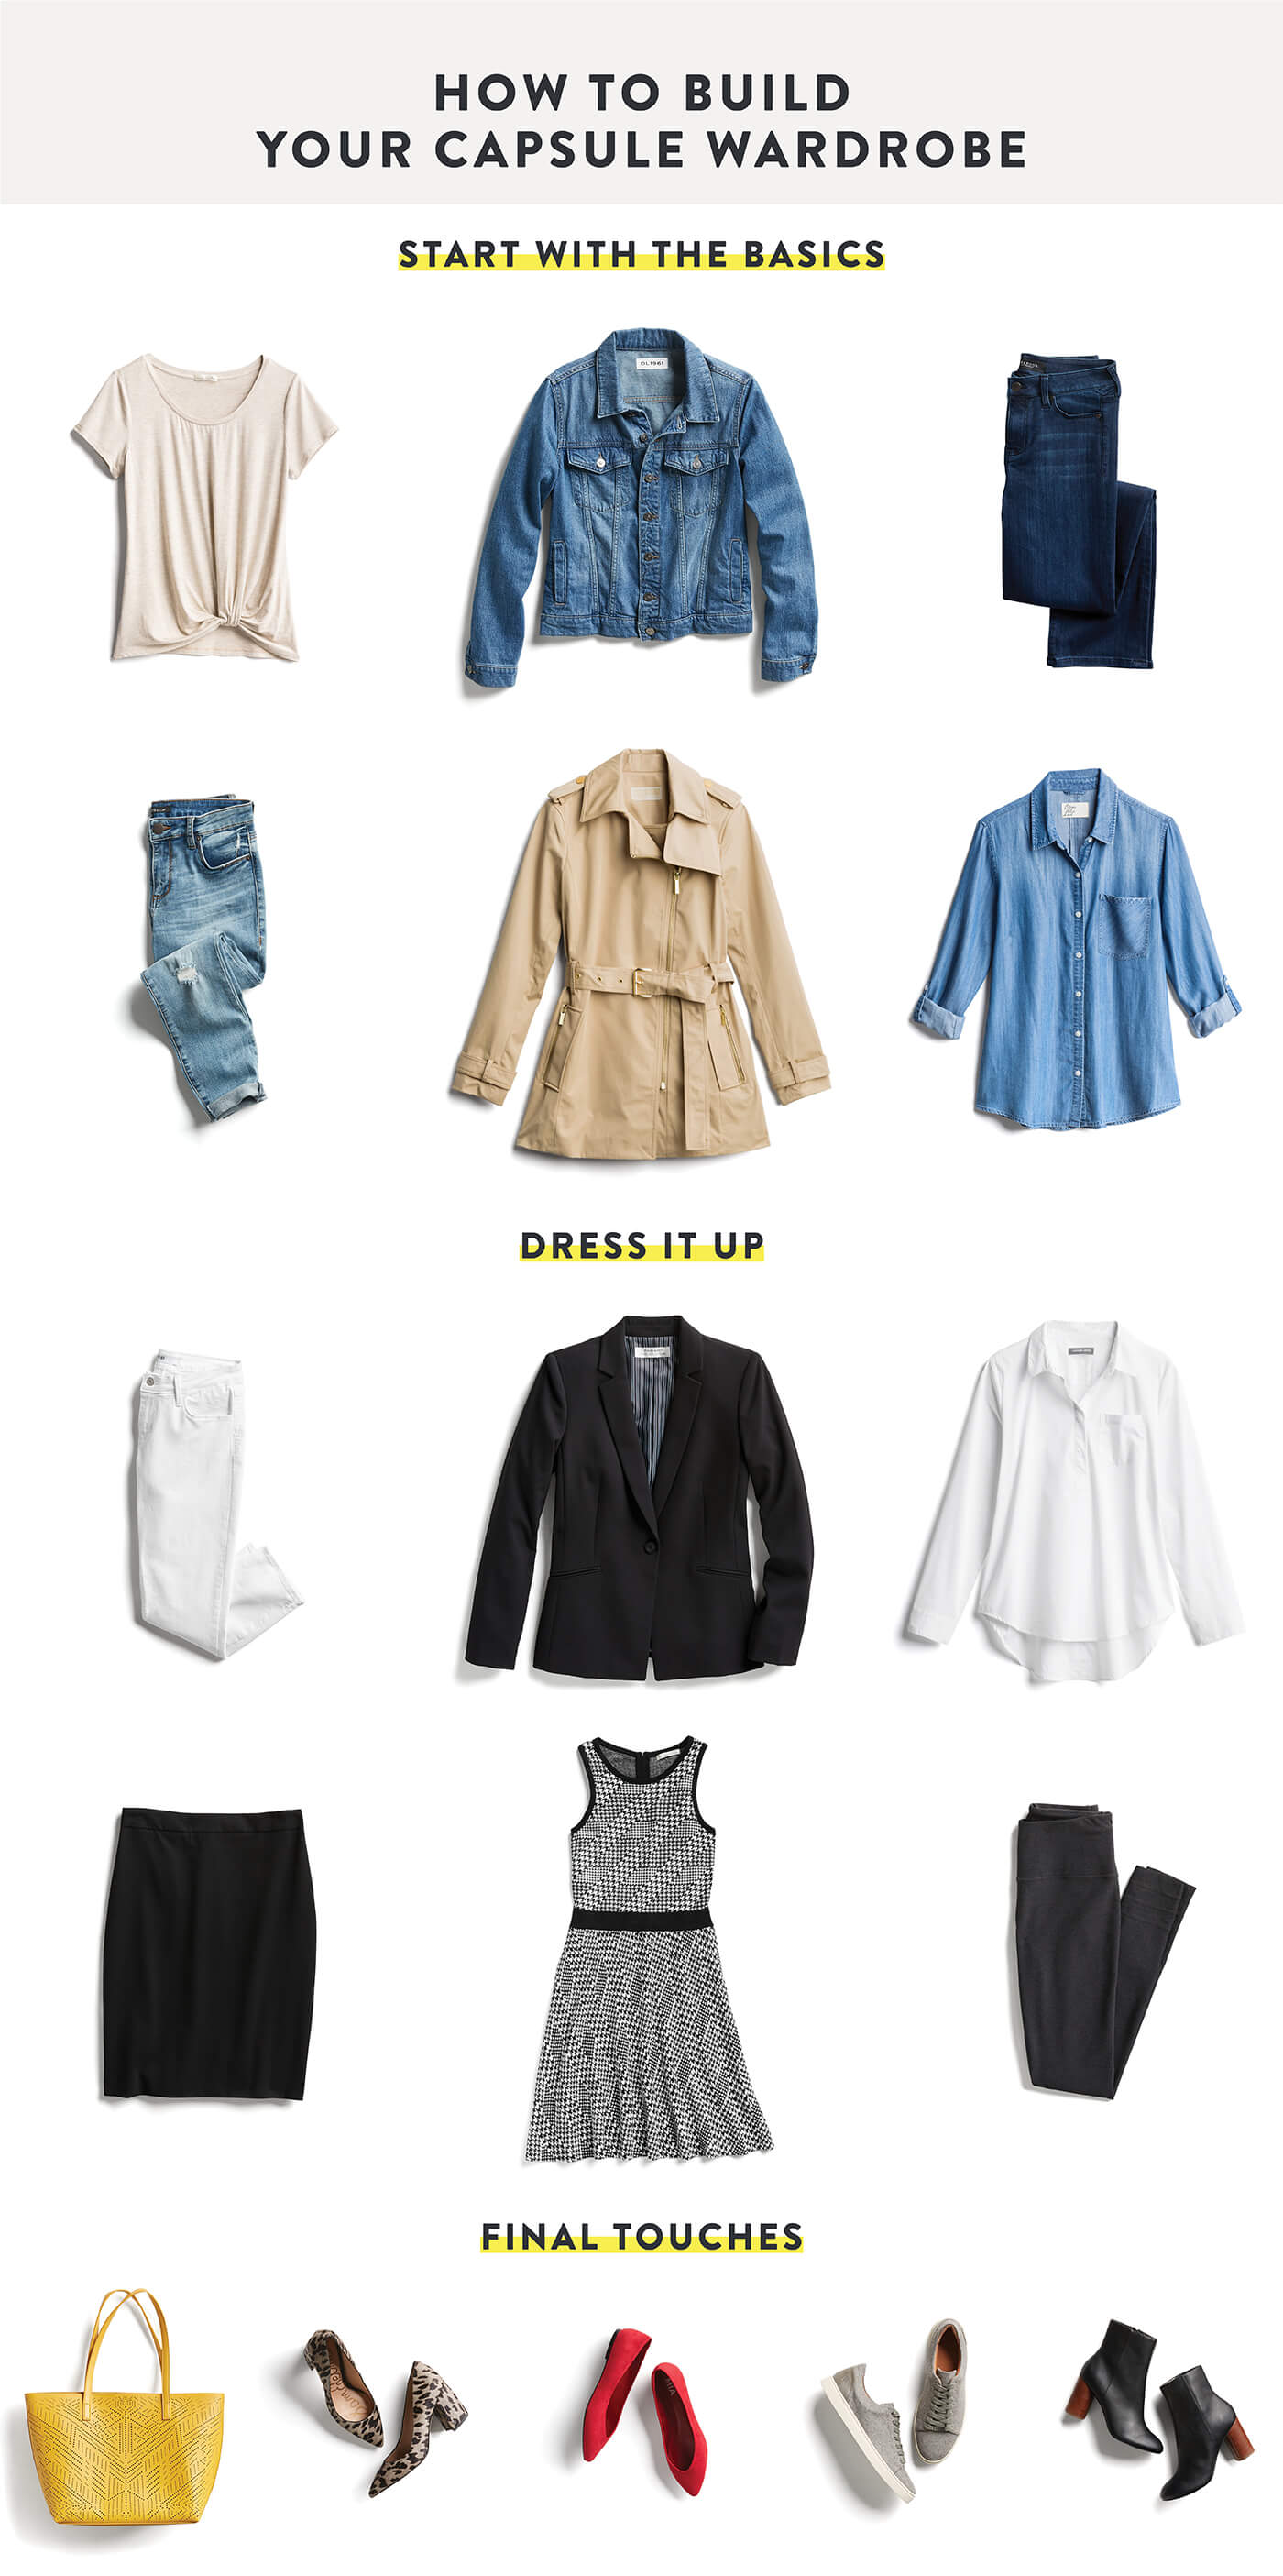 12b3fec5213 Keep reading to learn more about building a capsule wardrobe!